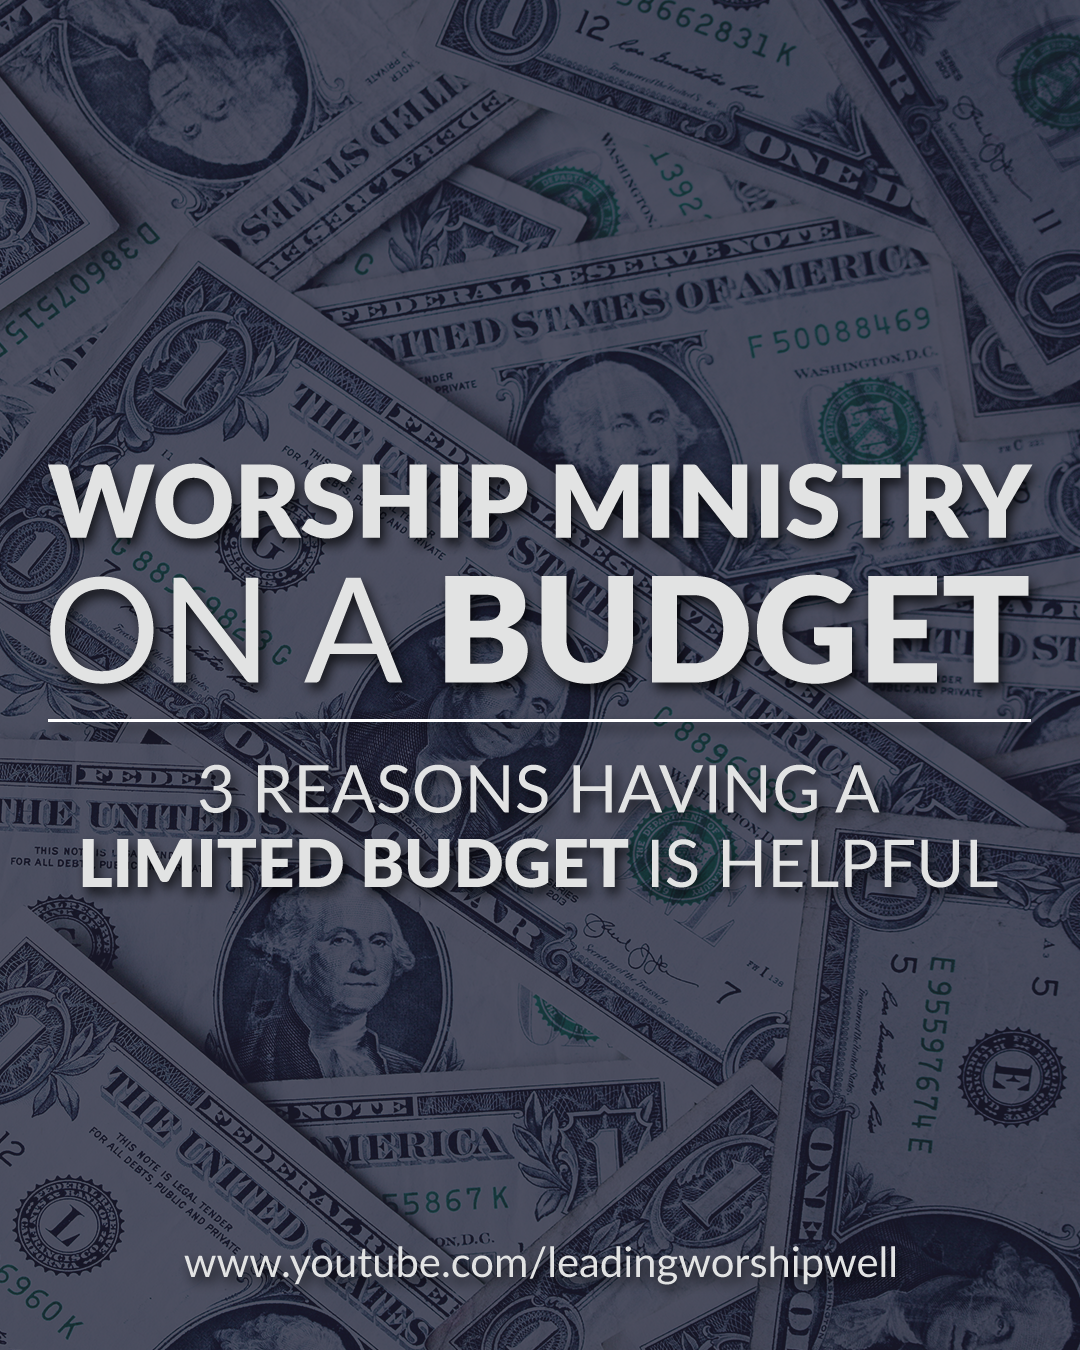 Worship Ministry On A Budget | 3 Reasons Having A Limited Budget Is Helpful (Video)